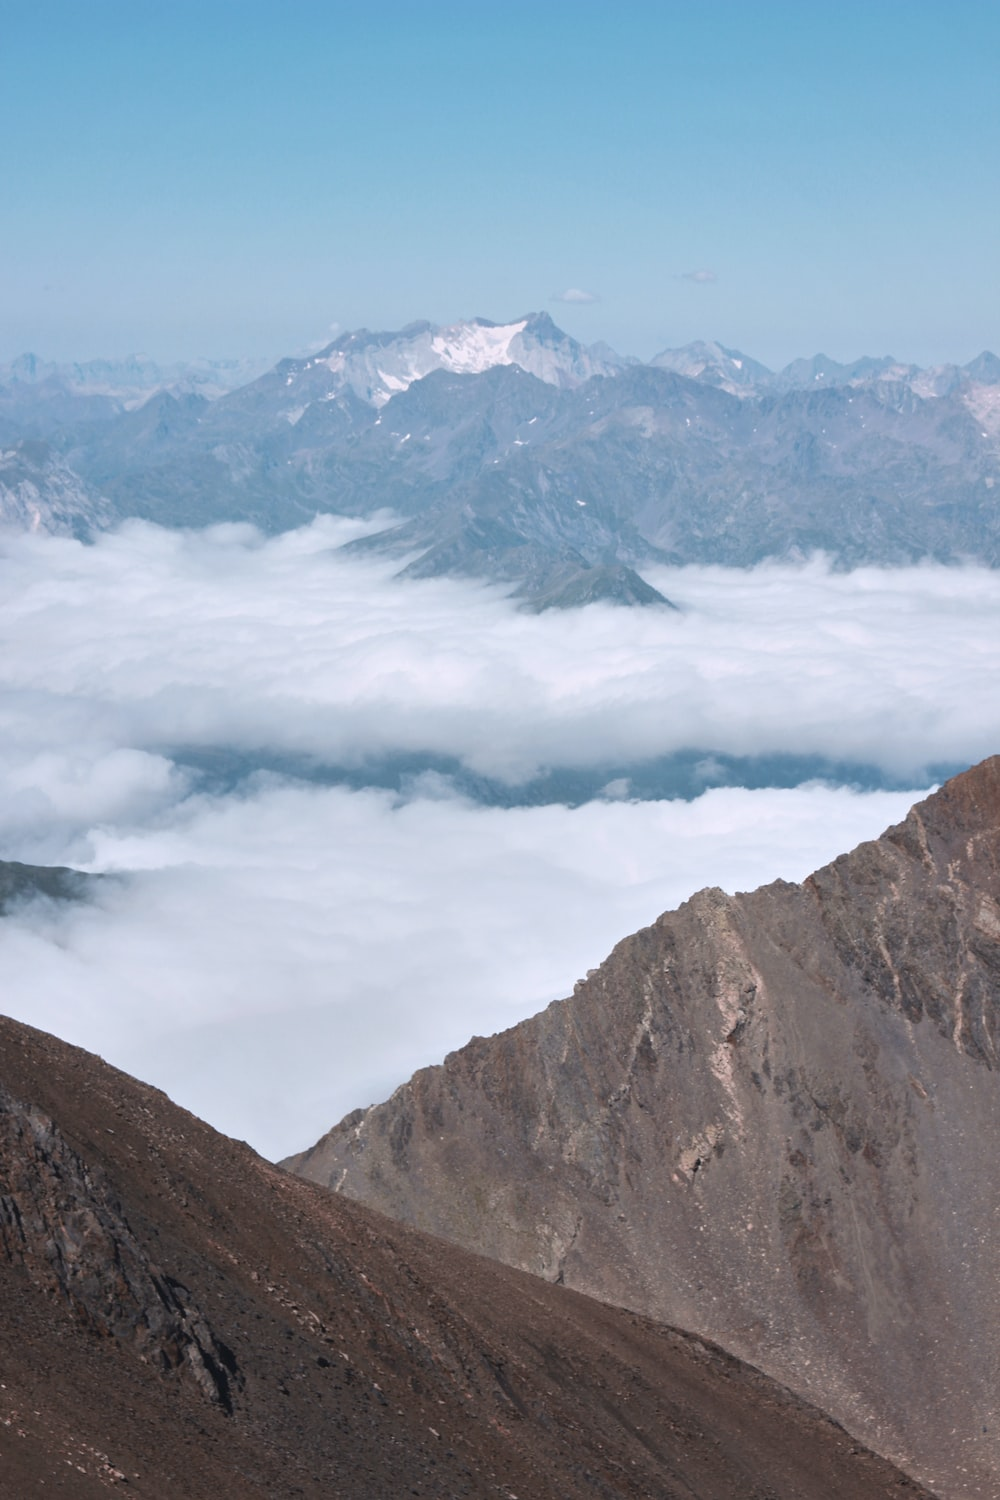 brown and gray mountains under white clouds during daytime